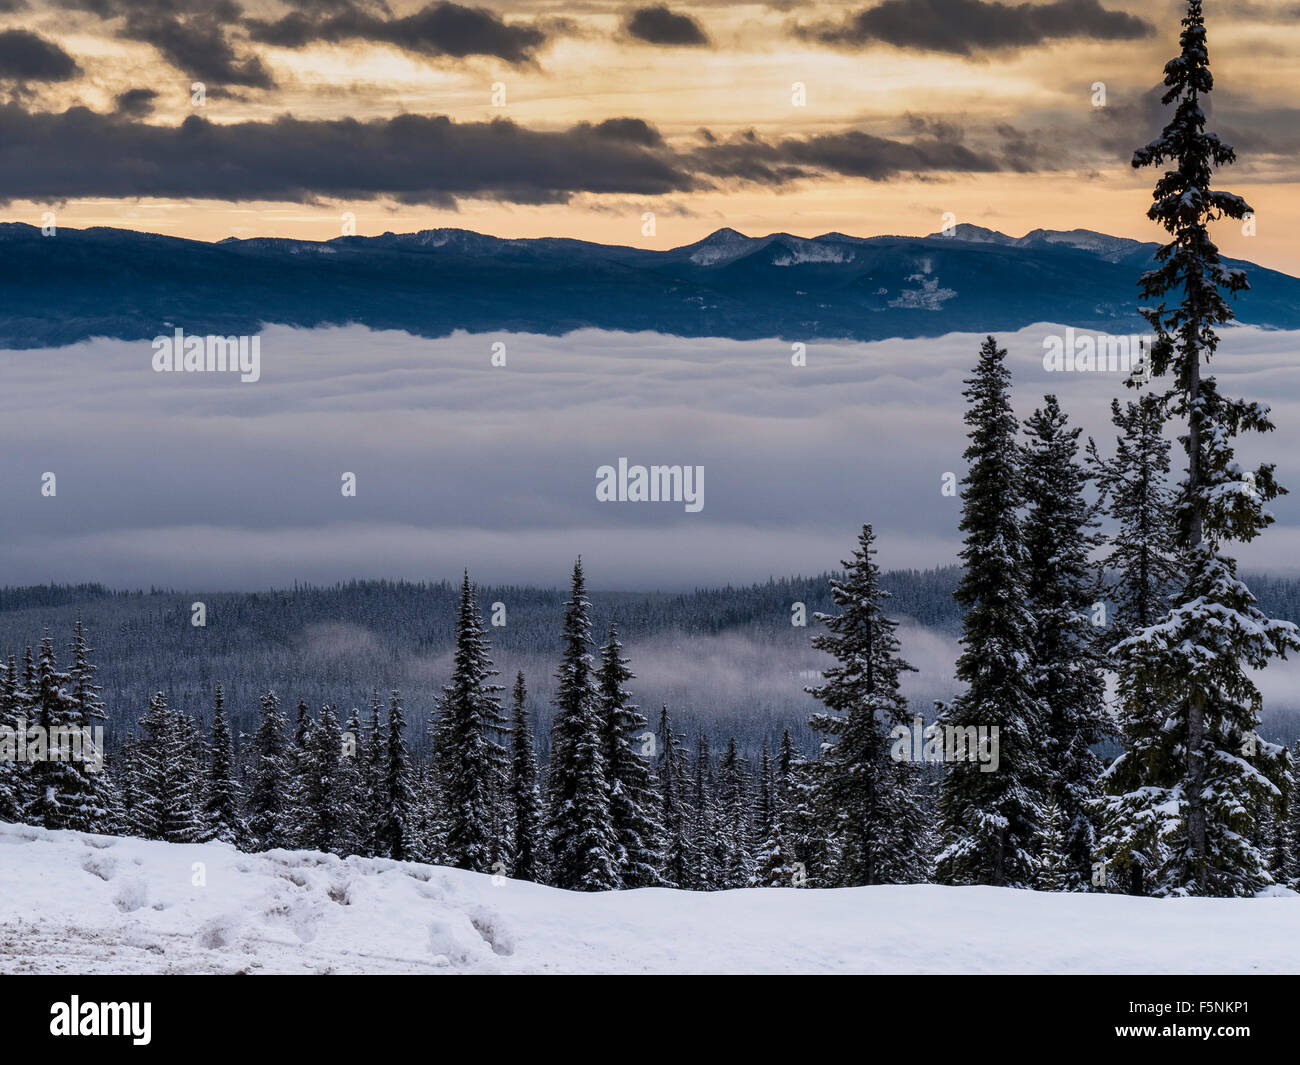 Les nuages et les montagnes, Big White Ski Resort, Colombie-Britannique, Canada. Photo Stock